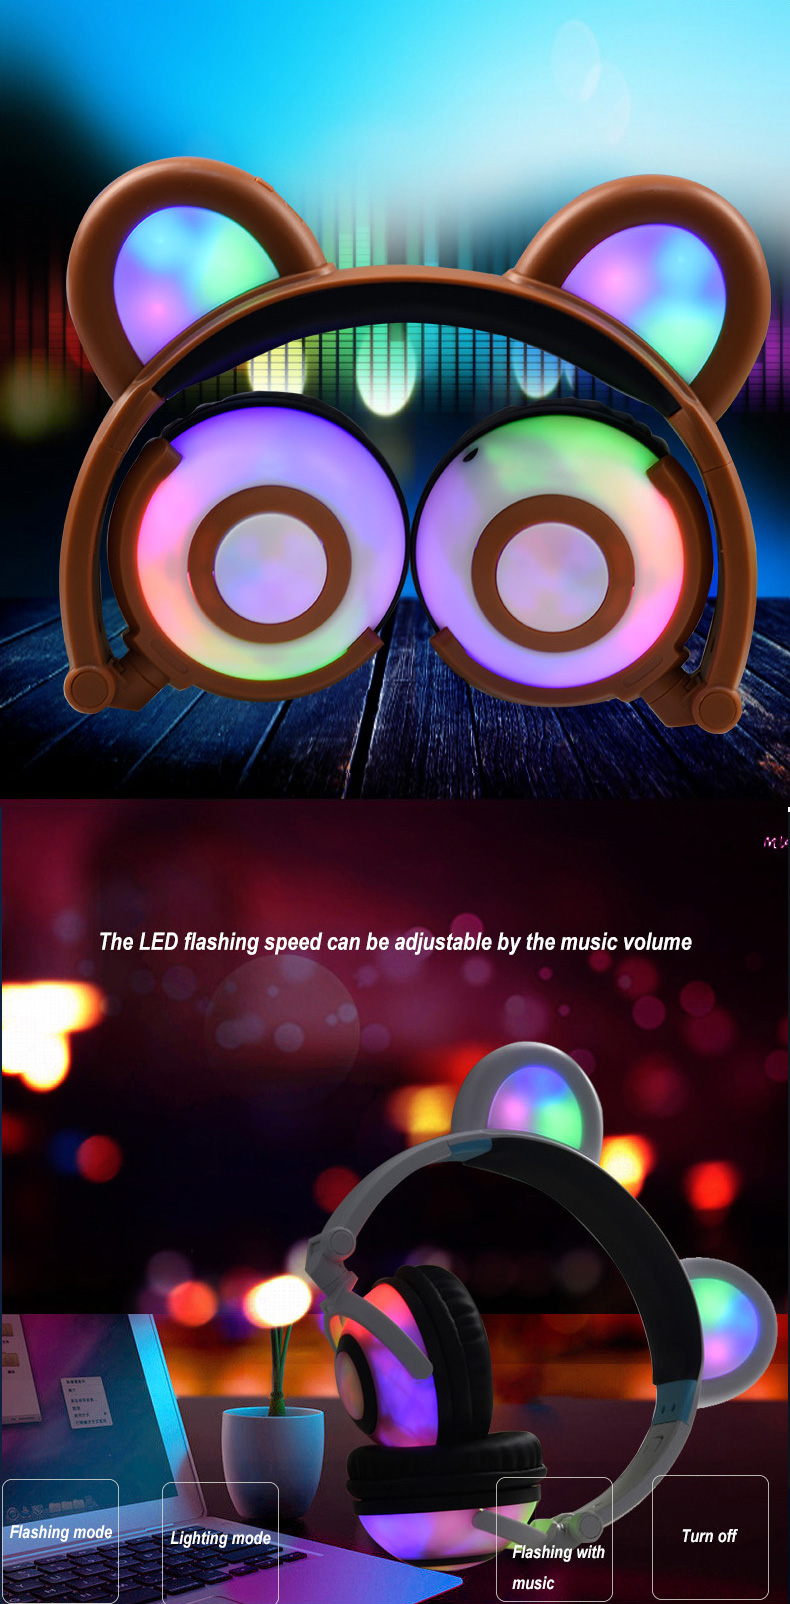 led flashing headphones